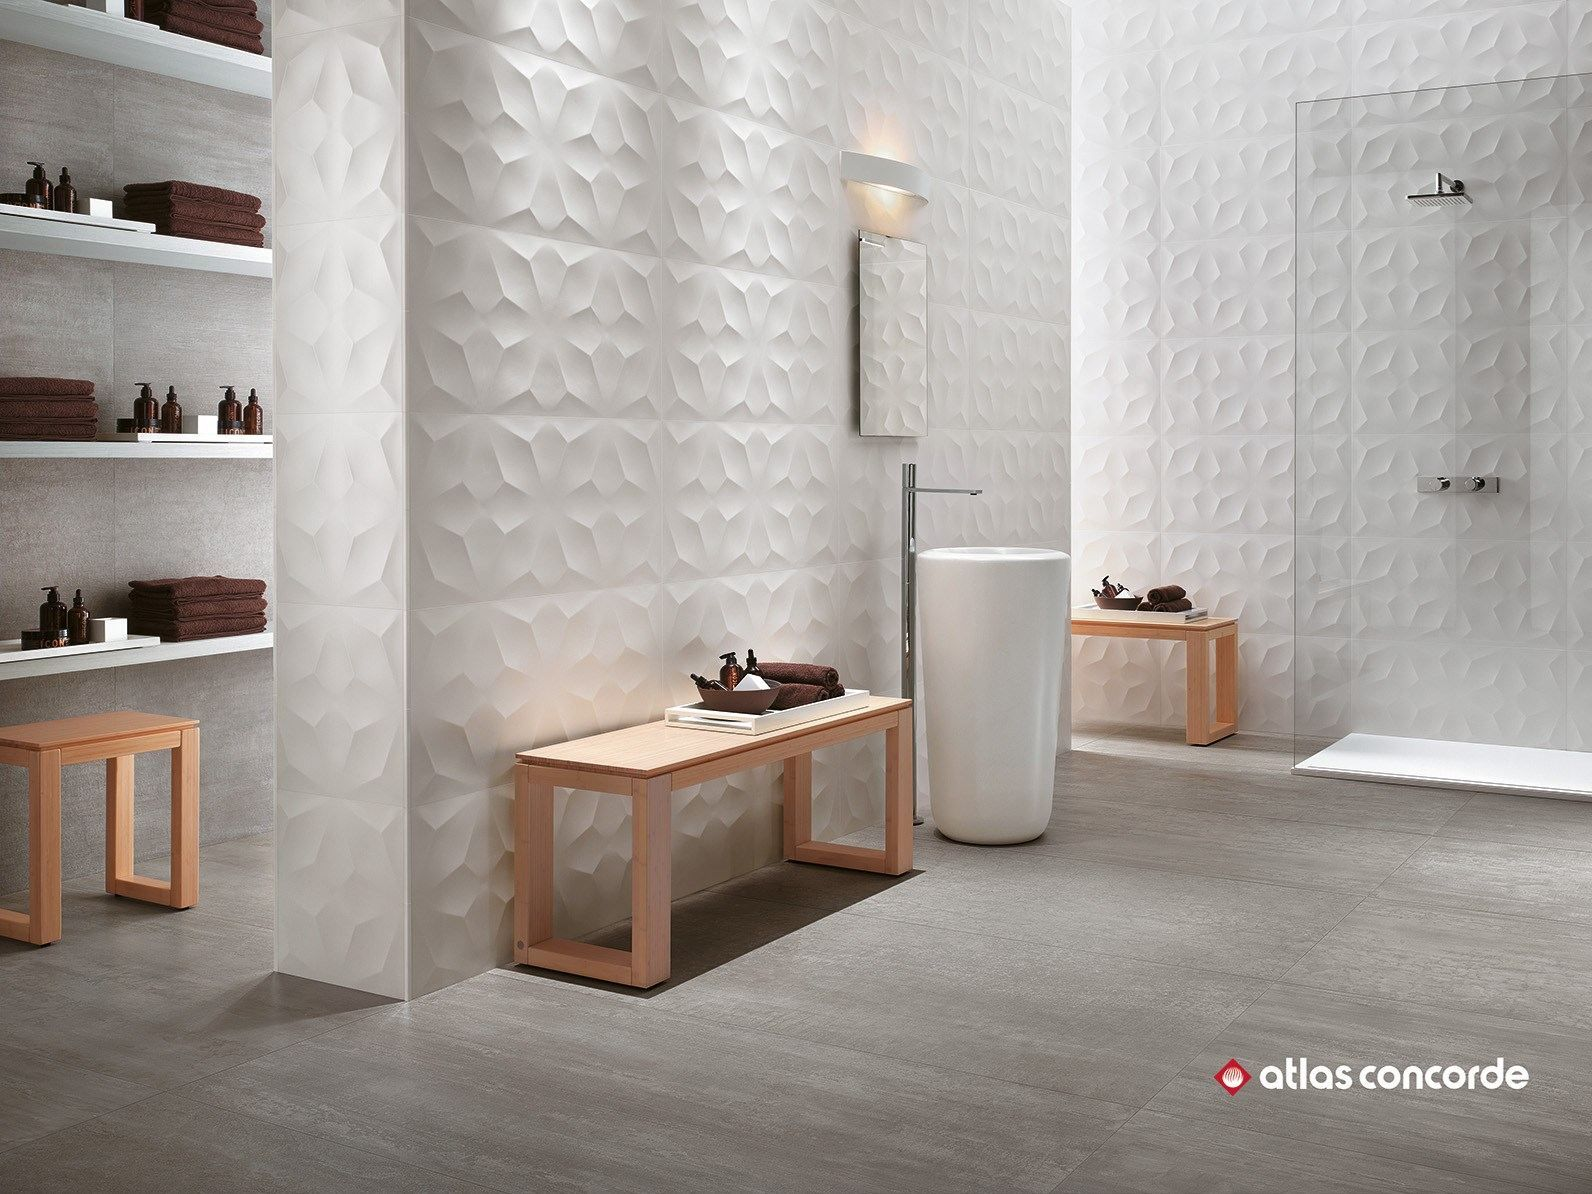 Download The Catalogue And Request Prices Of 3d Wall Design Diamond By Atlas Concorde White Paste 3d Wall Clad Wall Design White Wall Tiles Ceramic Wall Decor